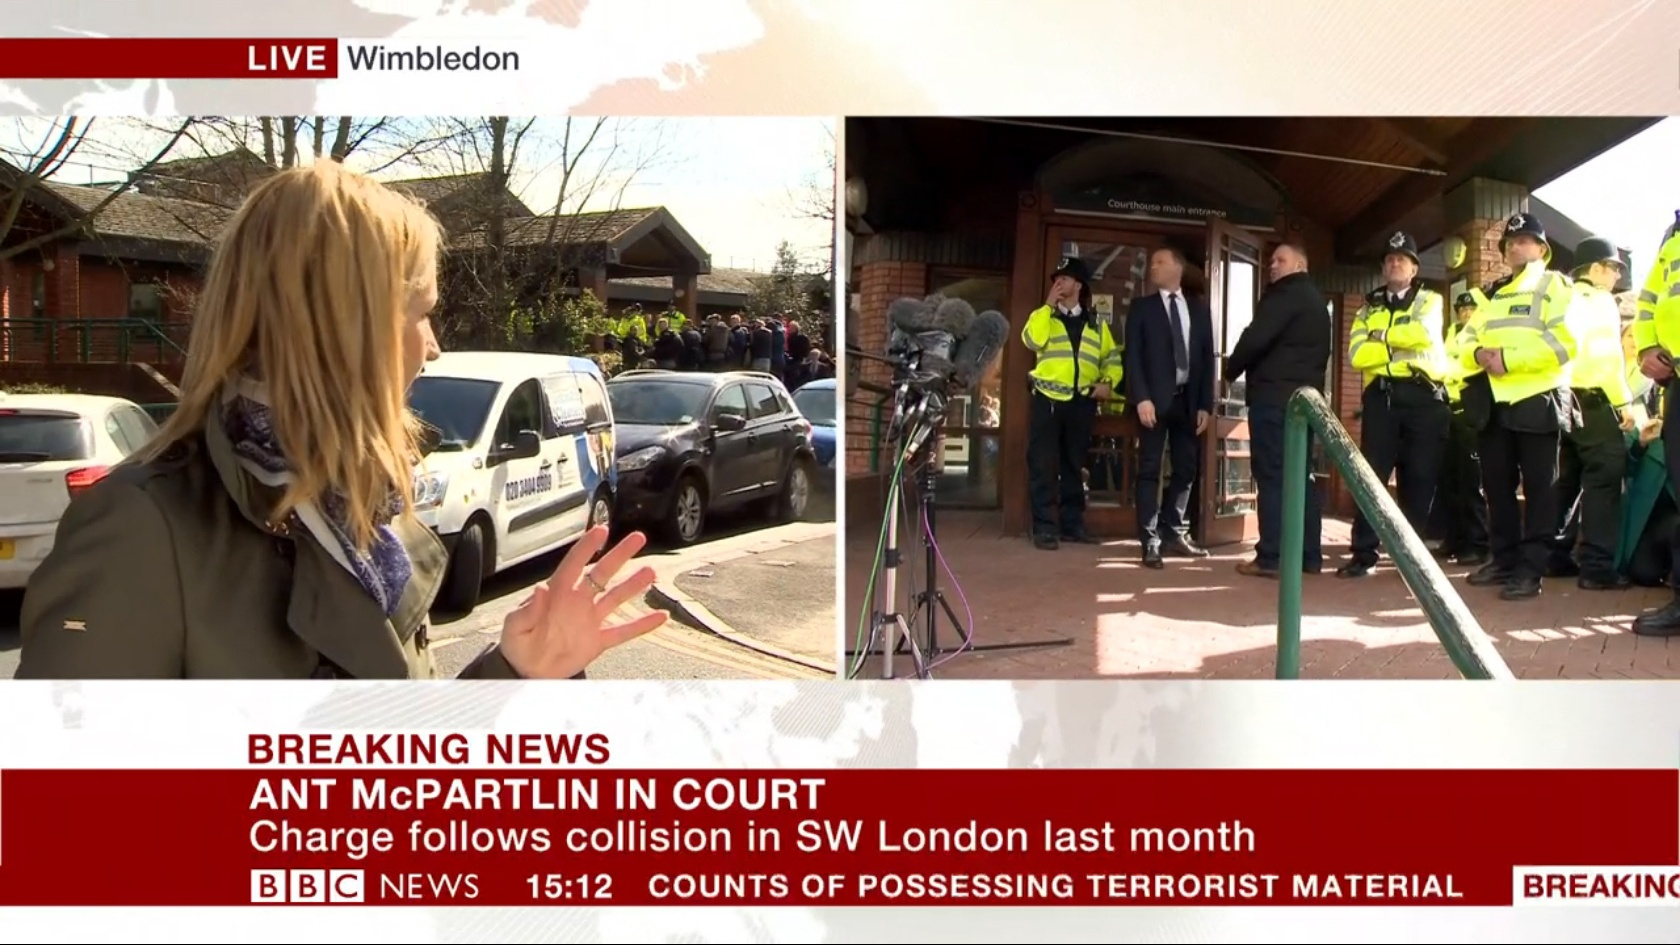 BBC reporter Alison Freeman, who was outside Wimbledon Magistrates Court (BBC News/PA)